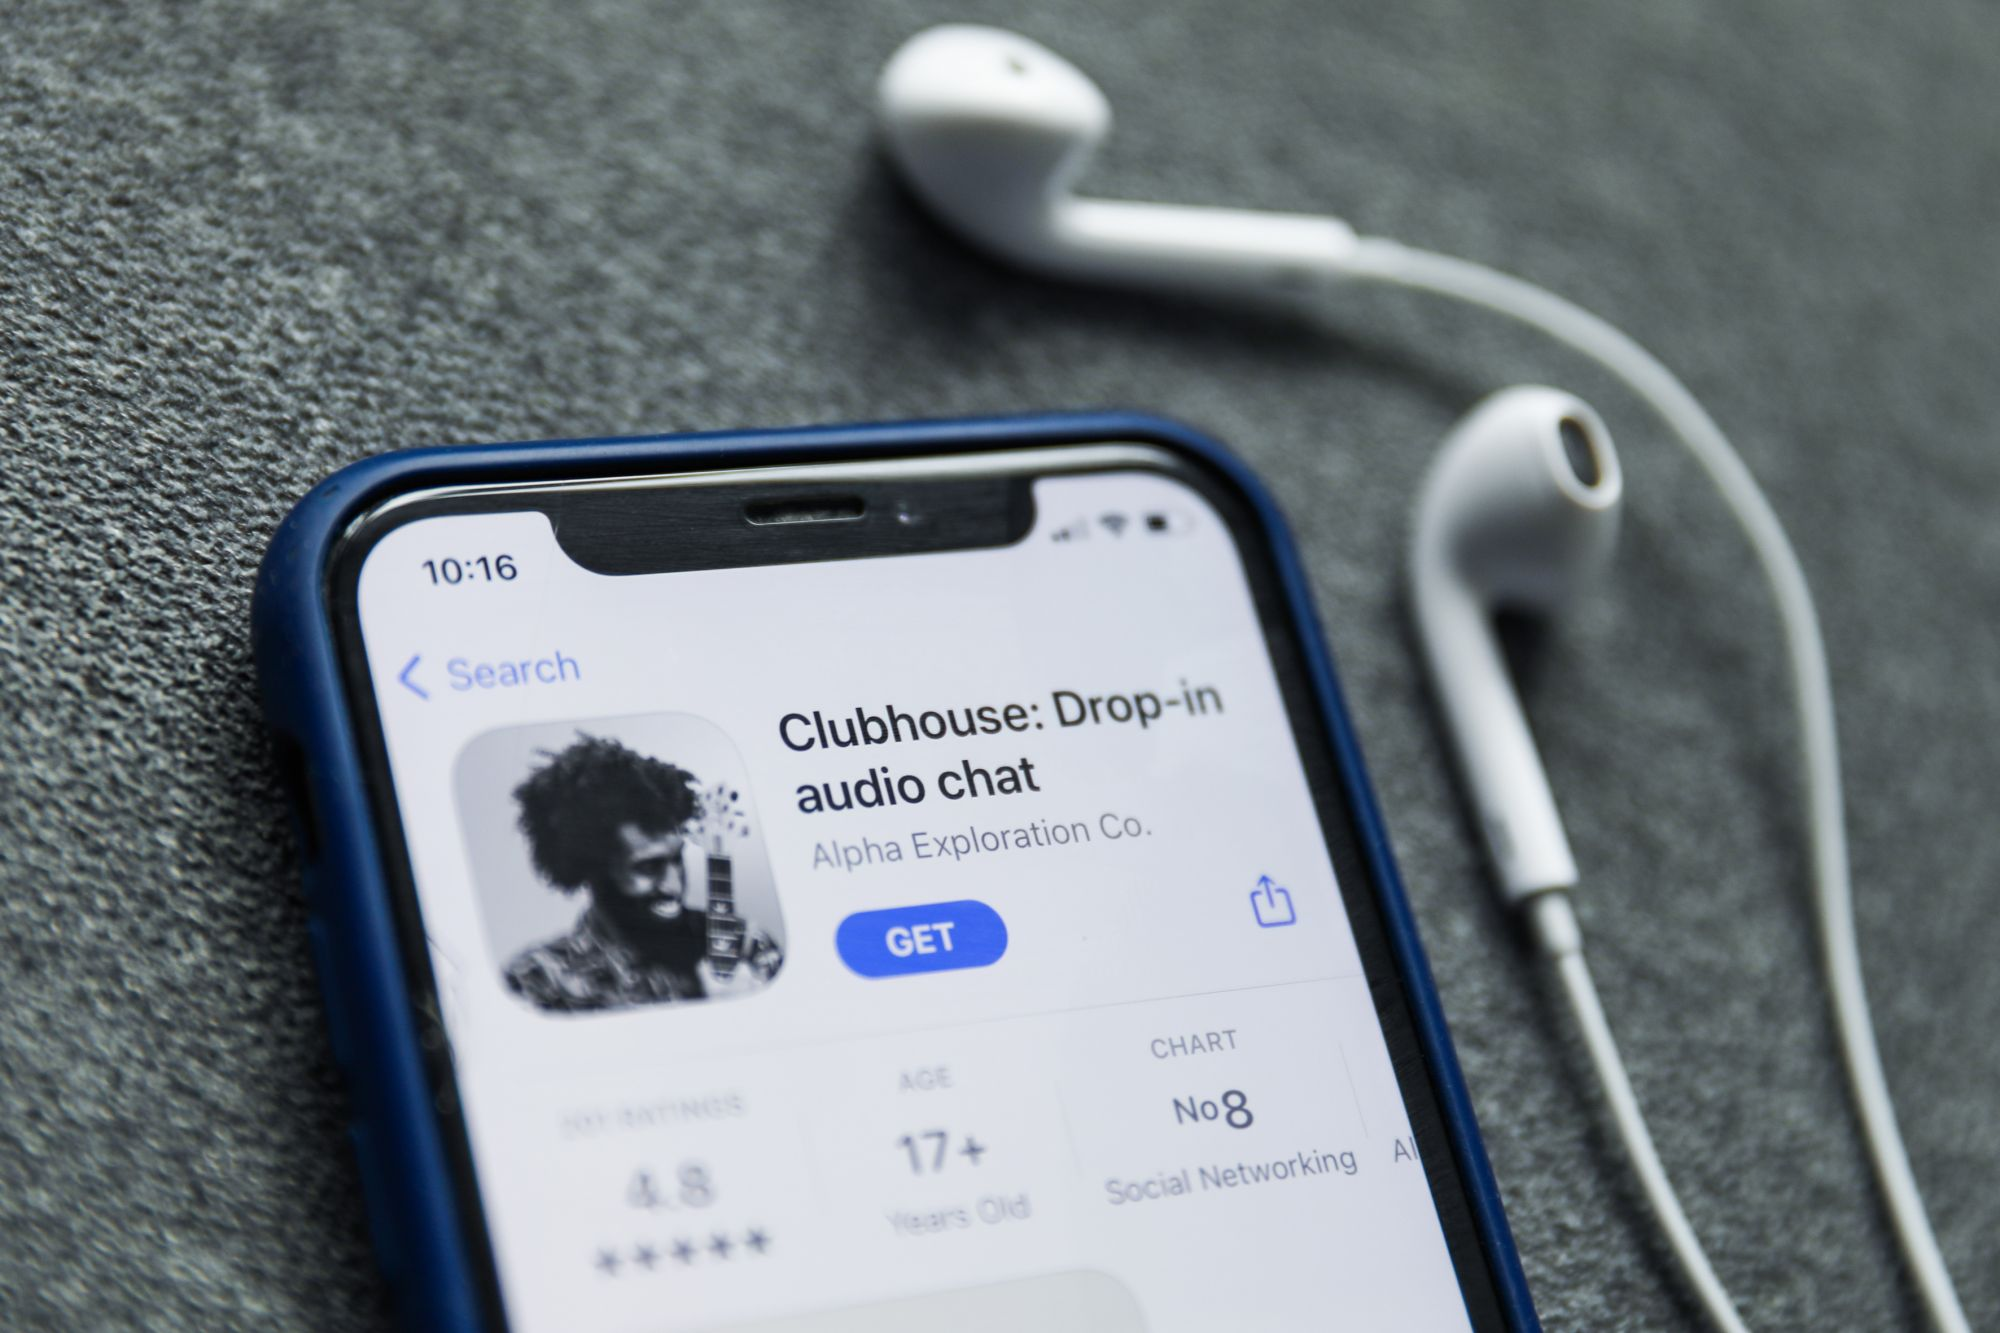 Clubhouse Drop-in audio chat app logo on the App Store is seen displayed on a phone screen in this illustration photo taken in Poland on February 3, 2021.  (Photo illustration by Jakub Porzycki/NurPhoto via Getty Images)